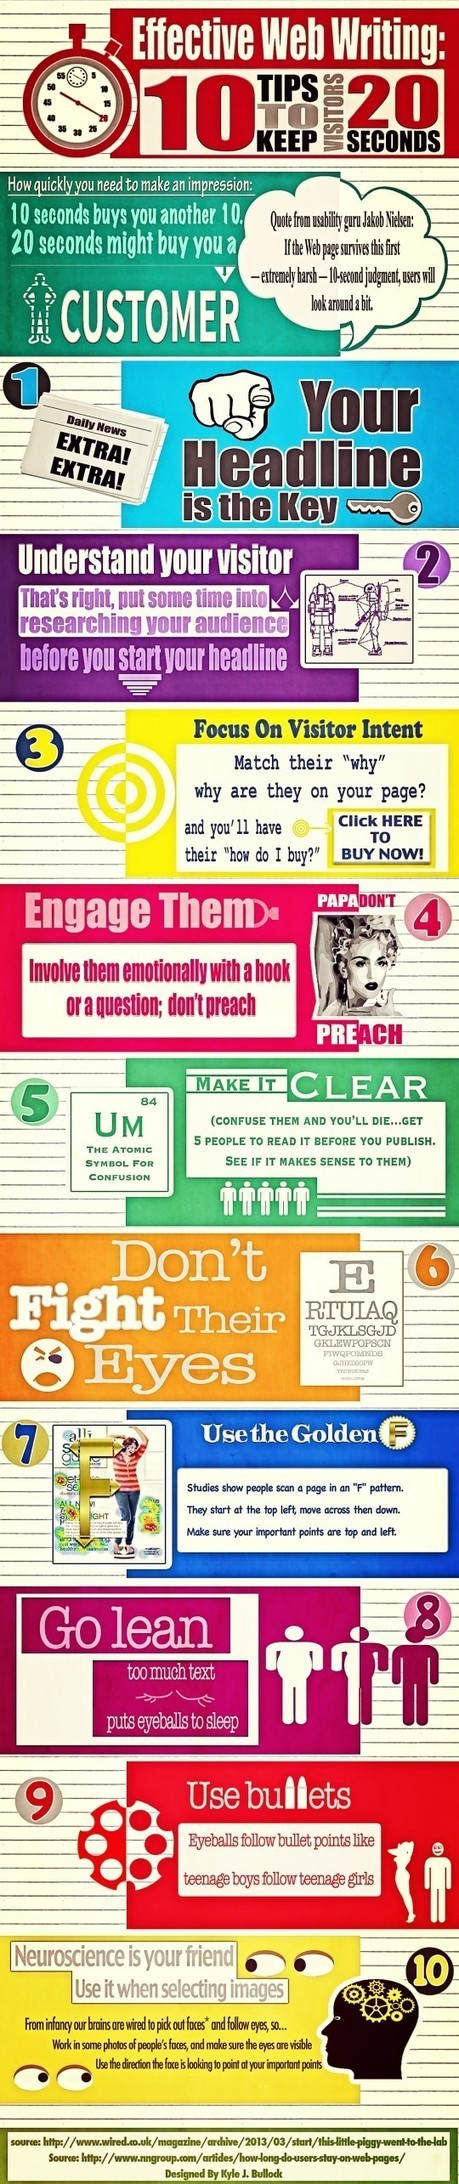 10 Effective Web Writing Tips   Comunicare   Scoop.it